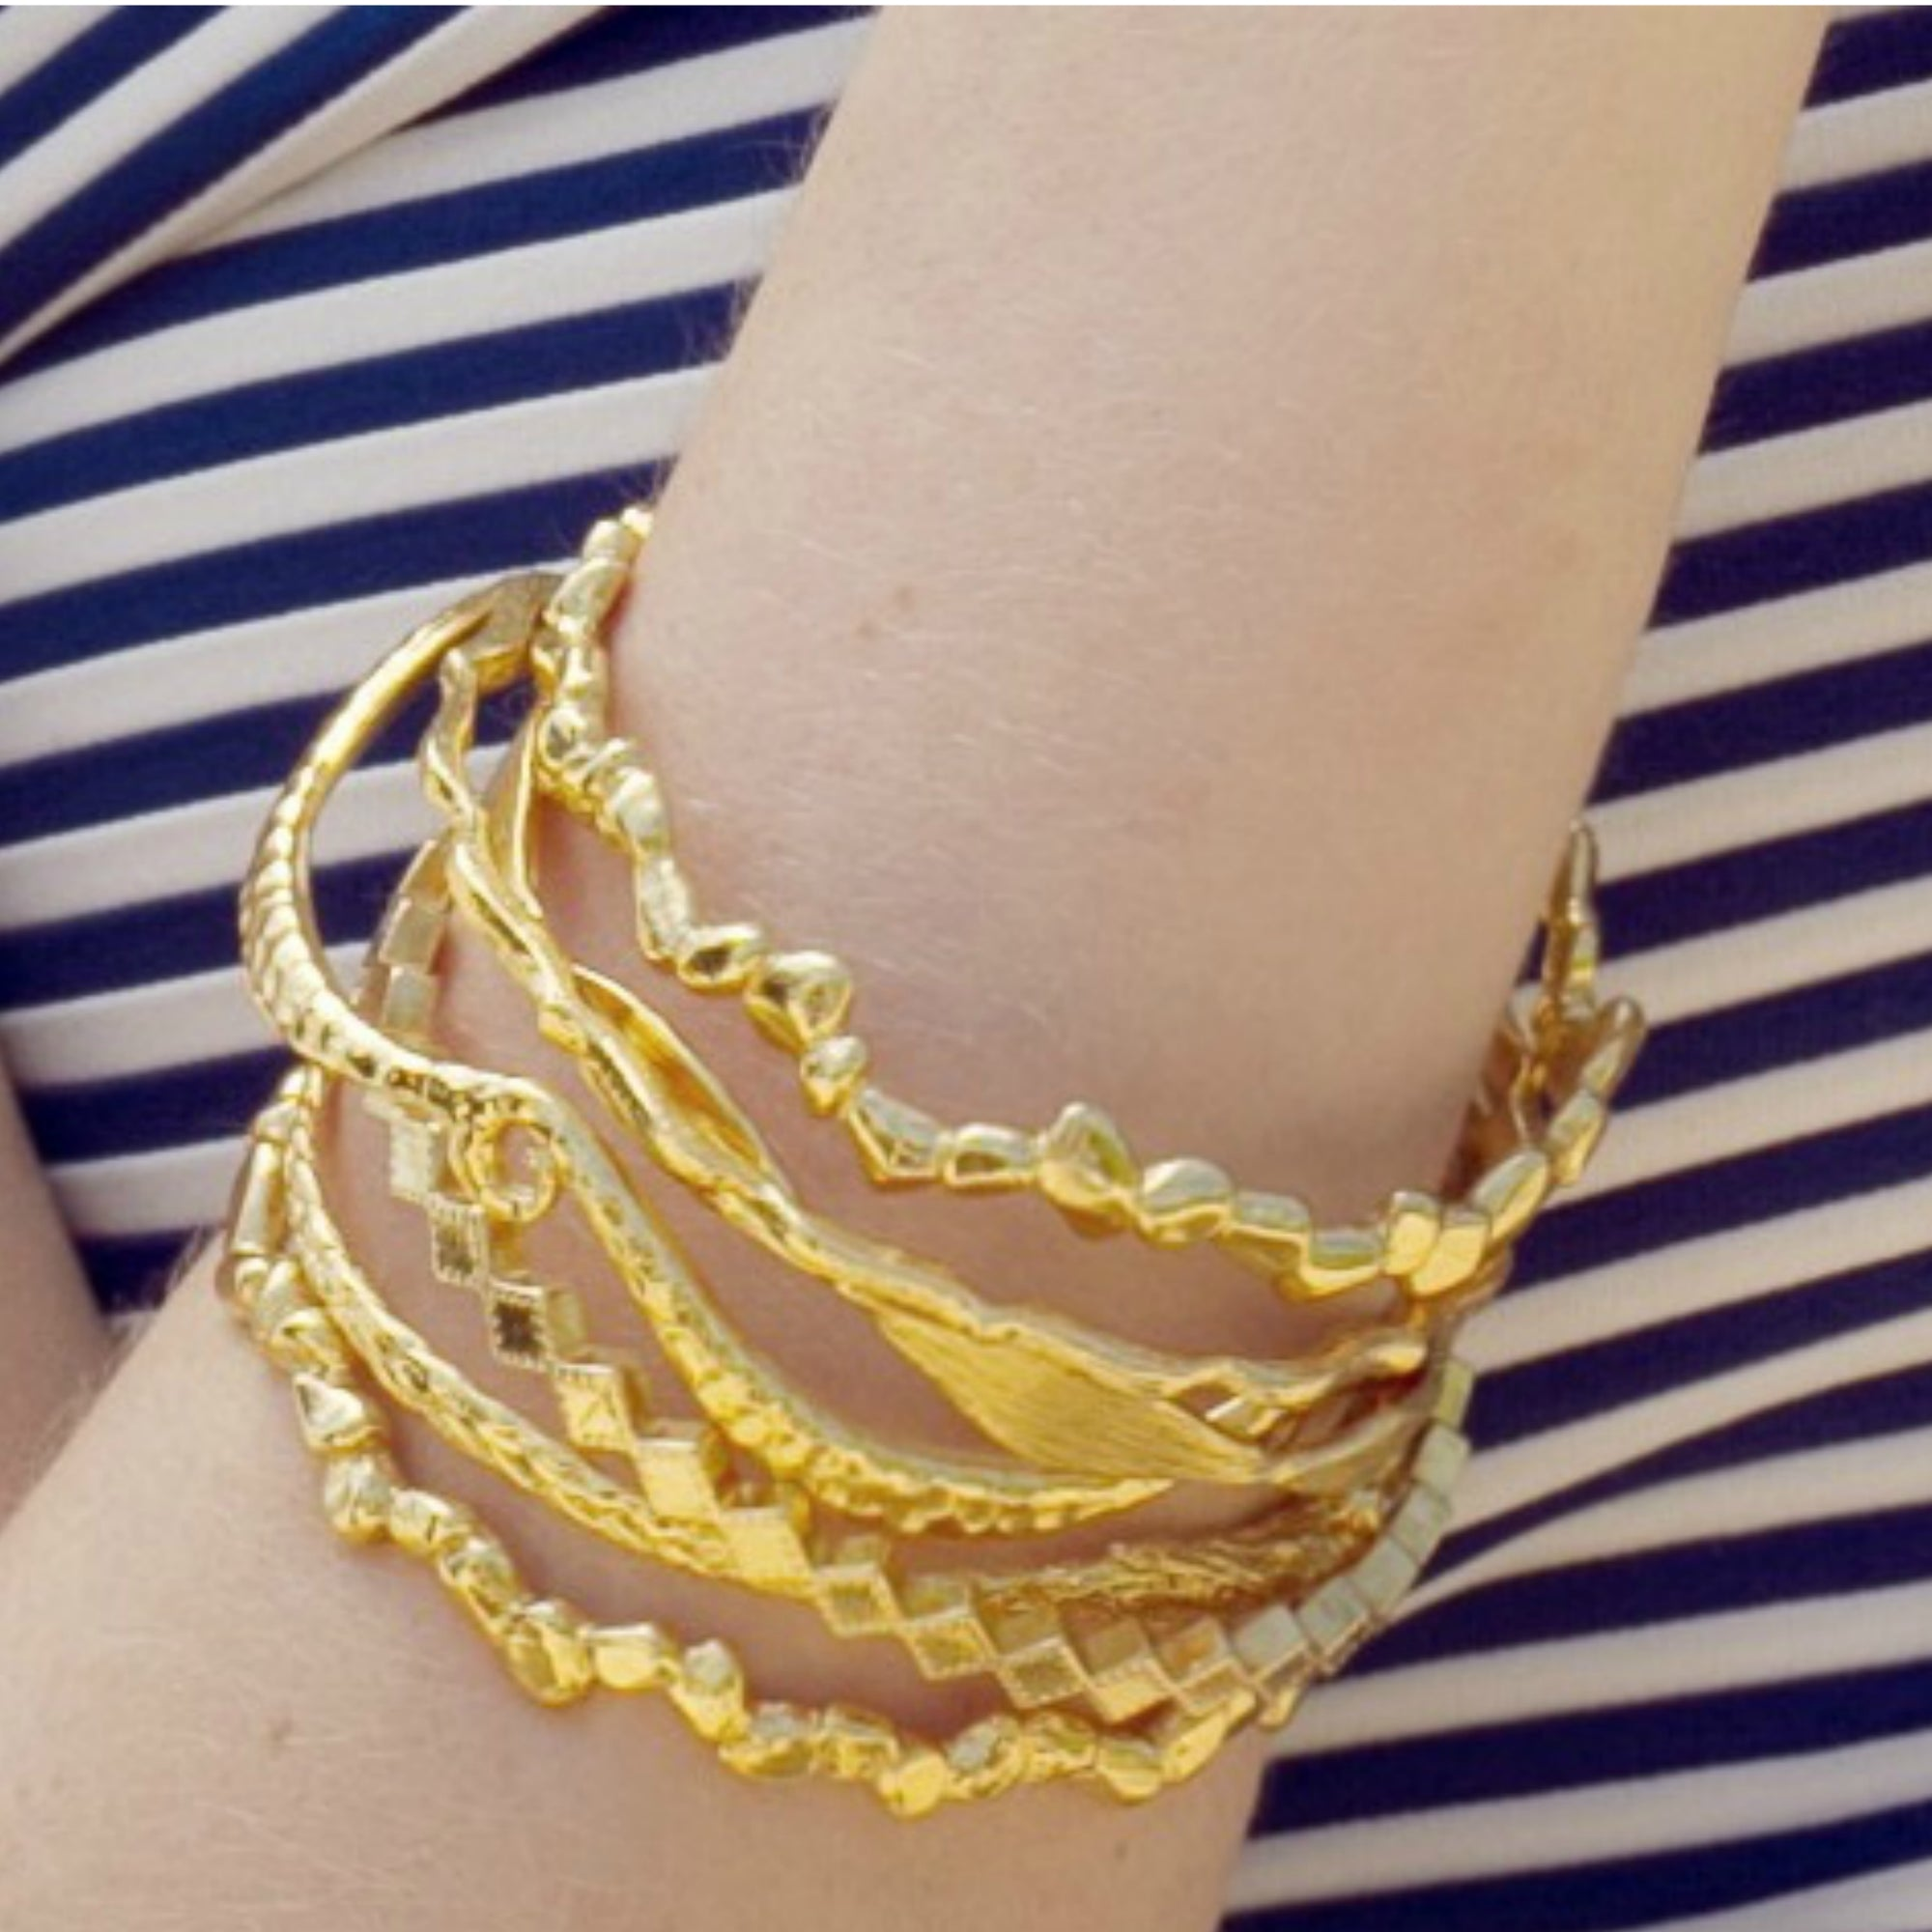 jewellery tagged bangles gold villa pattern bangle and rosie jewelry yellow zig collections kent silver zag